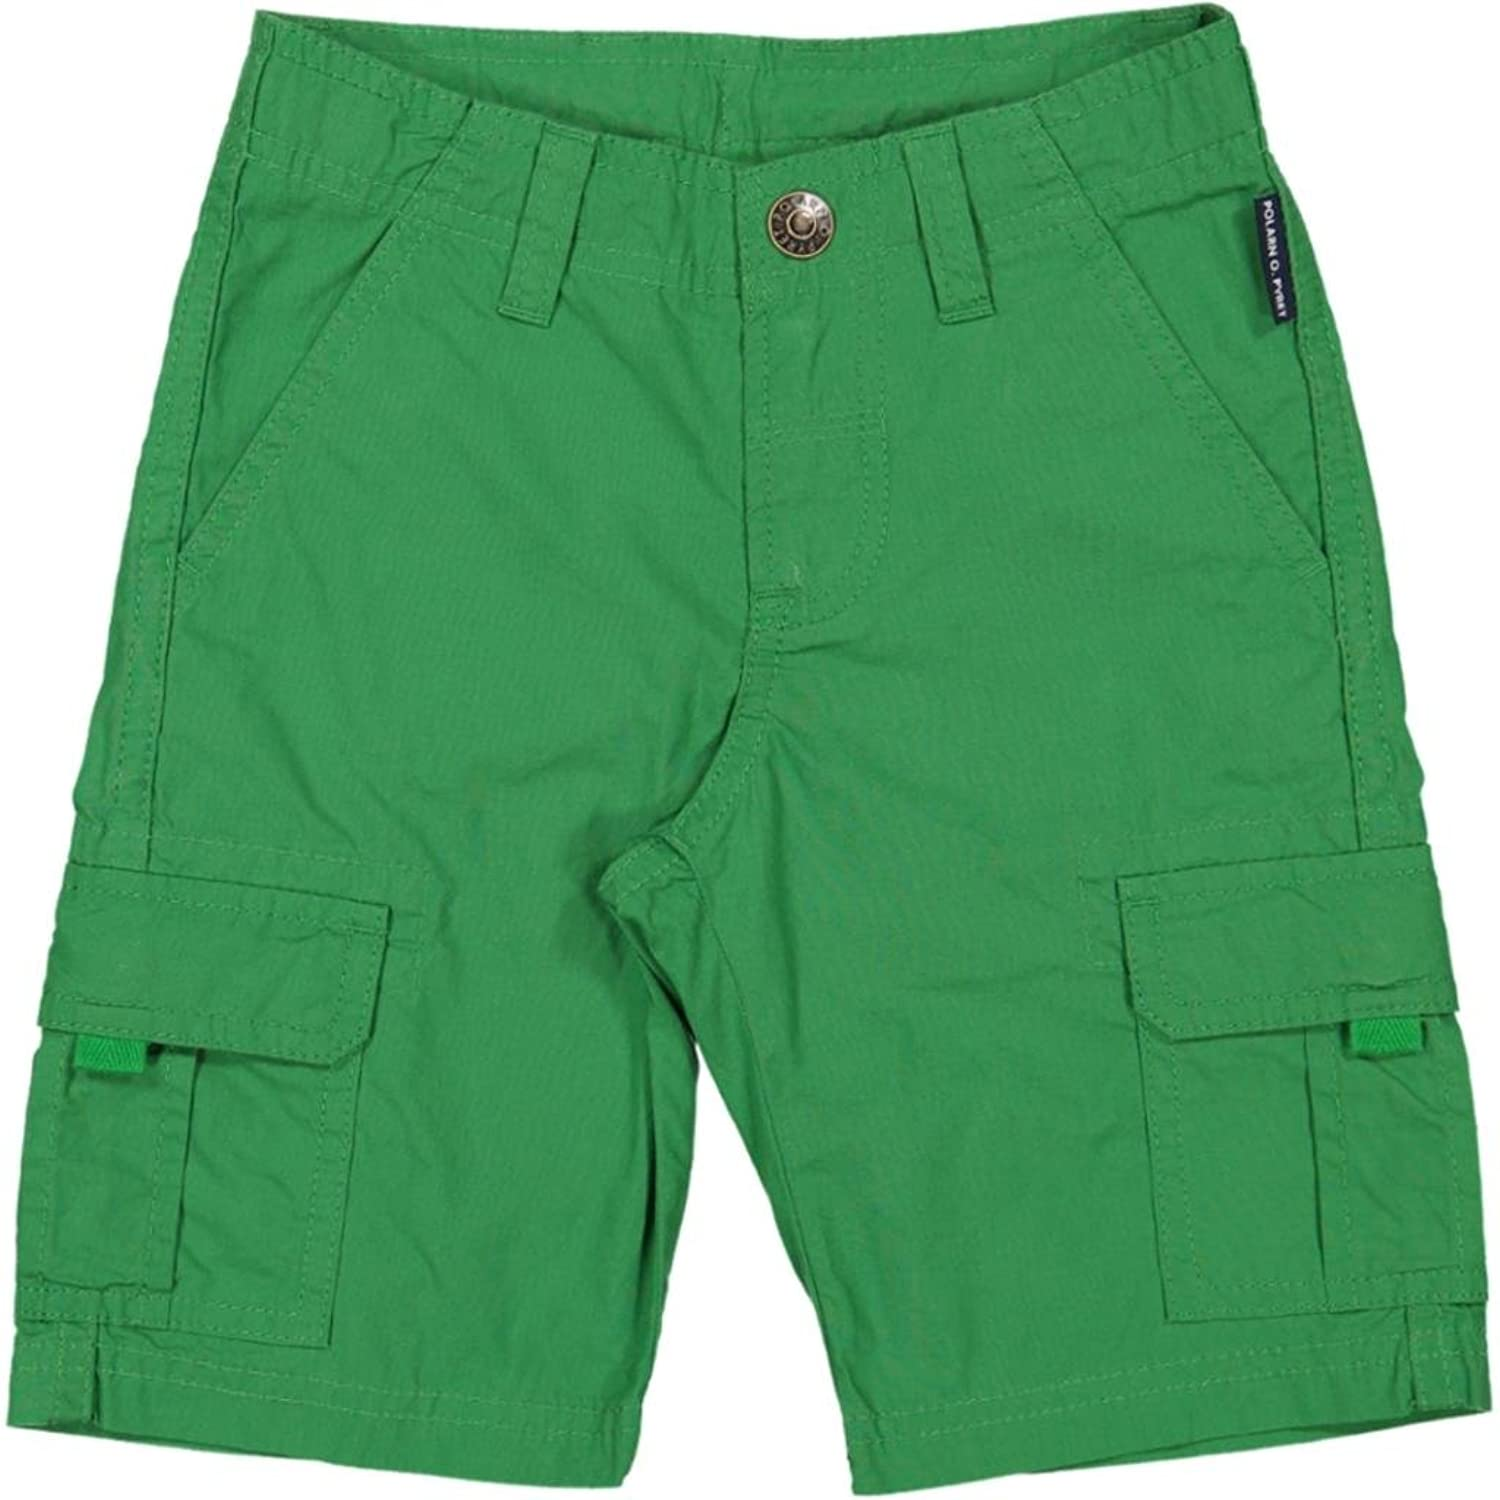 Polarn O. Pyret SHORTS ボーイズ